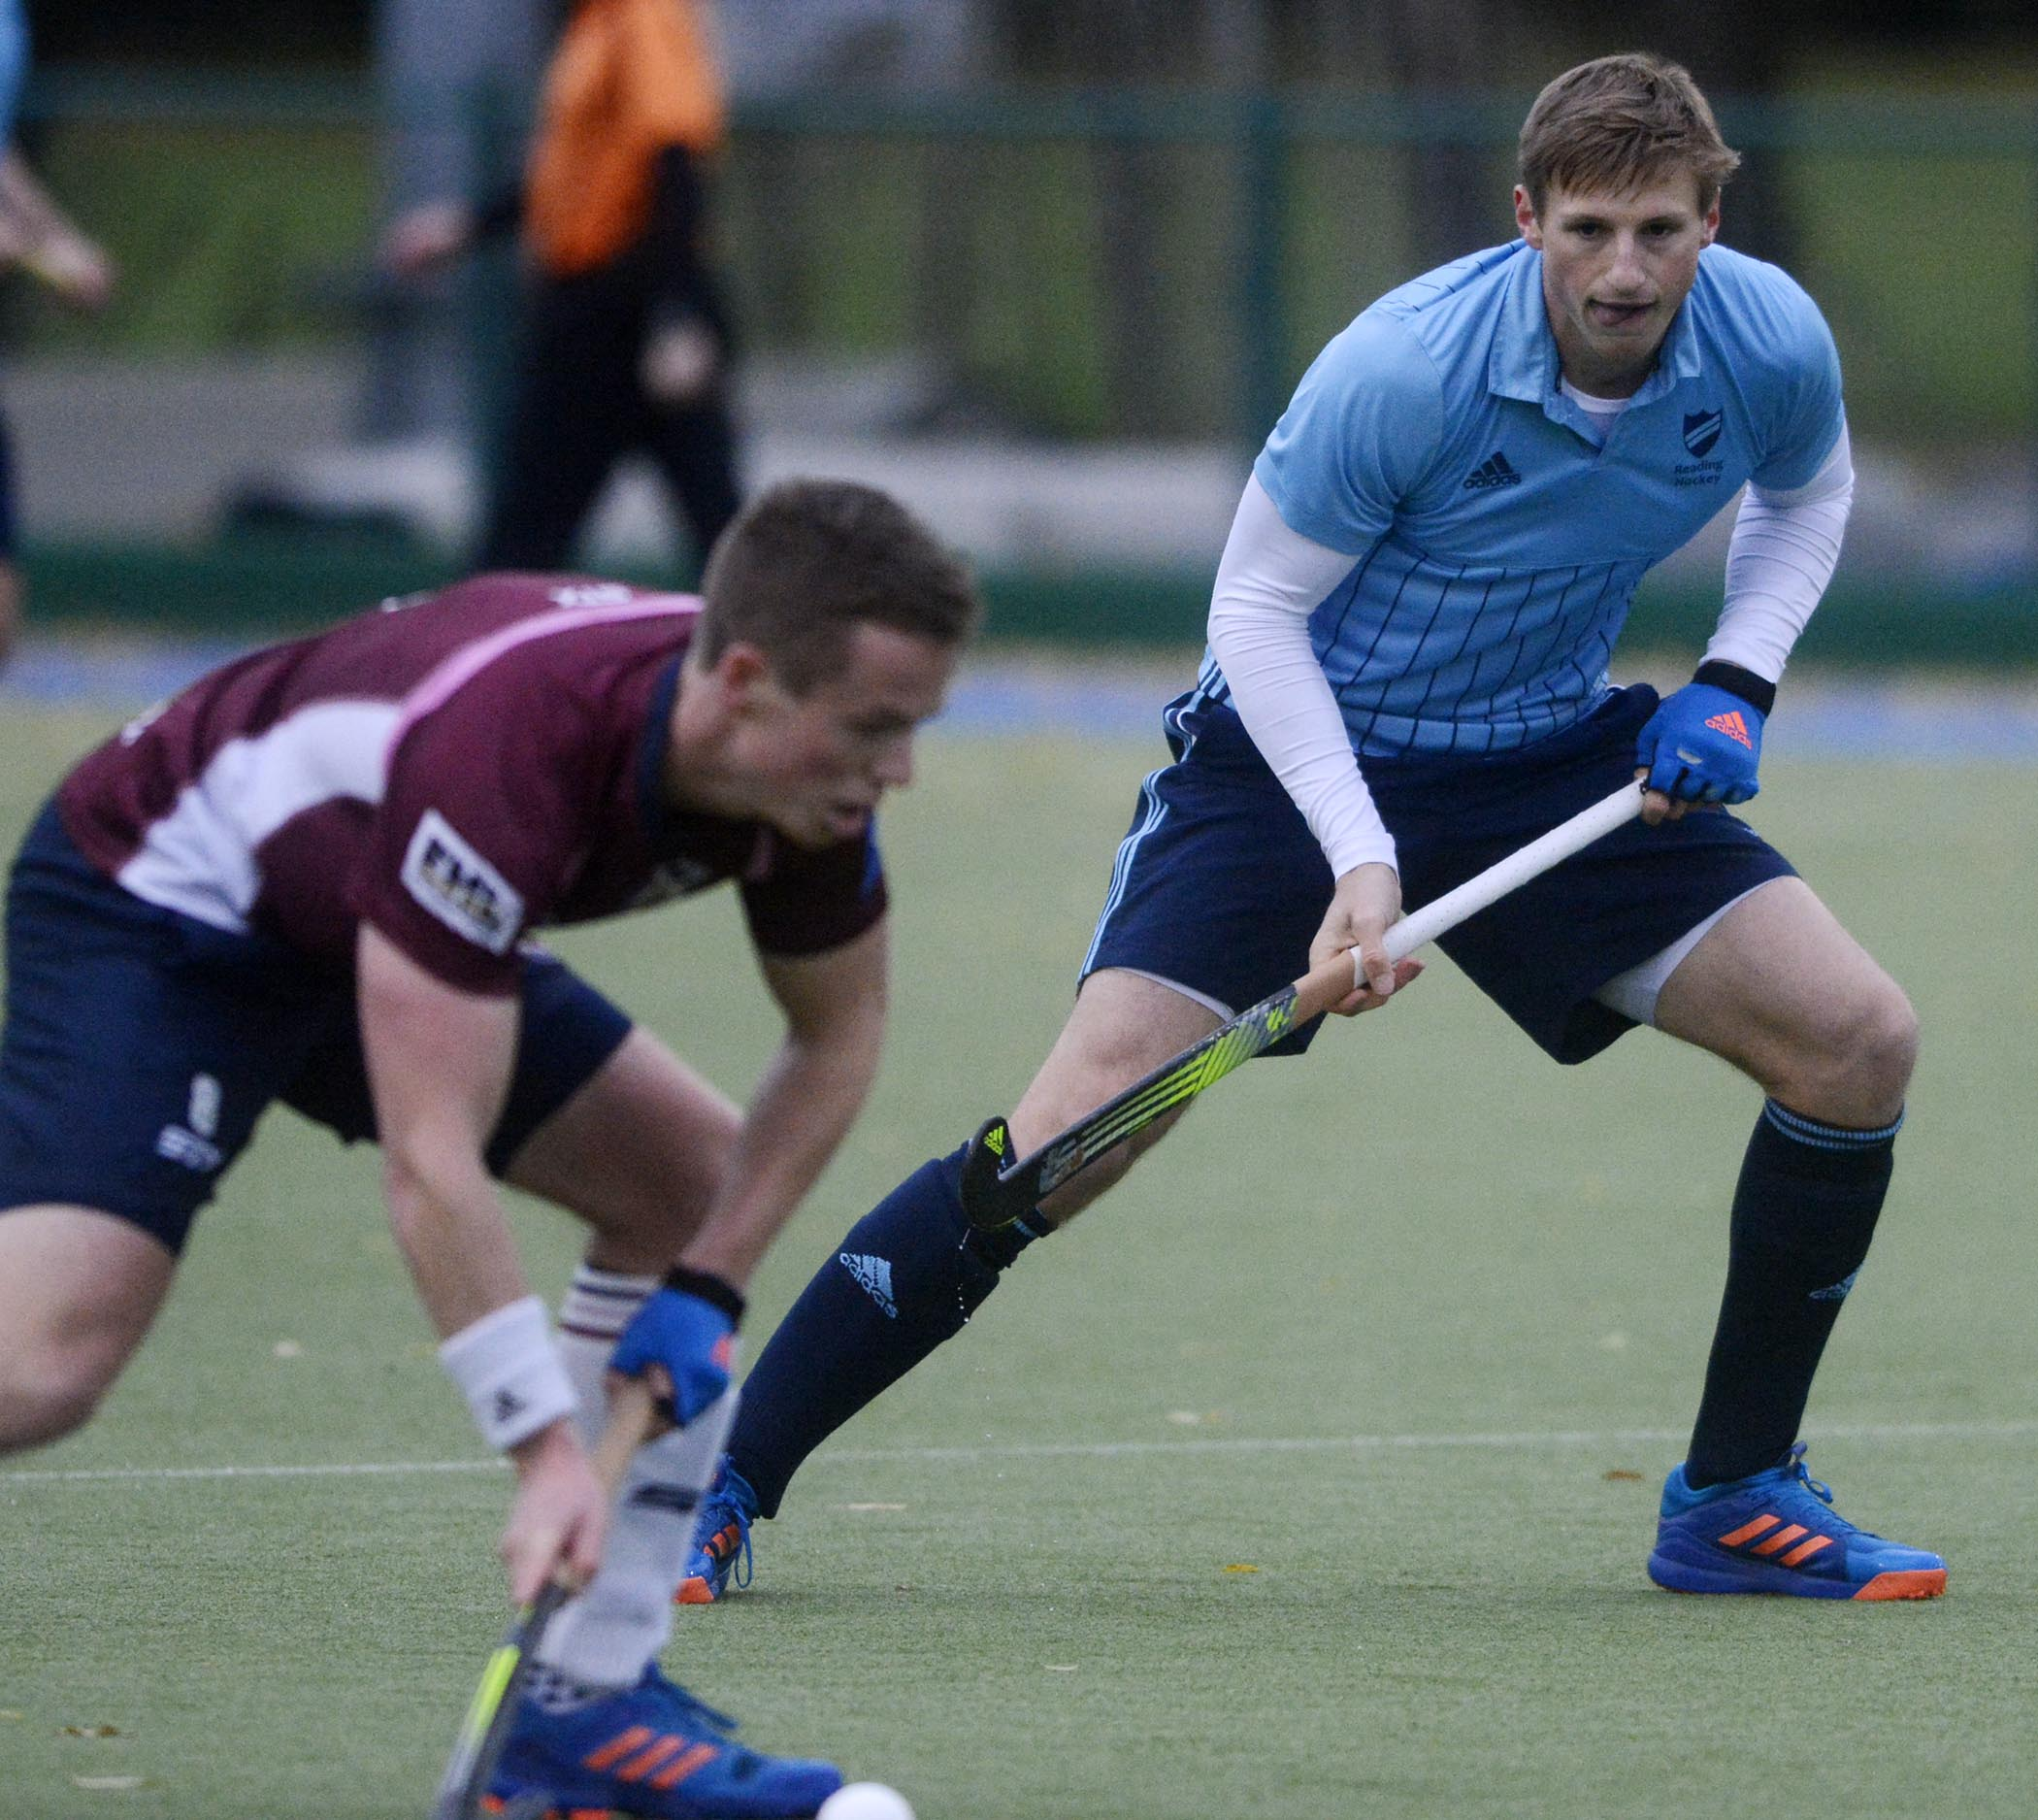 Tom Carson is in the GB squad